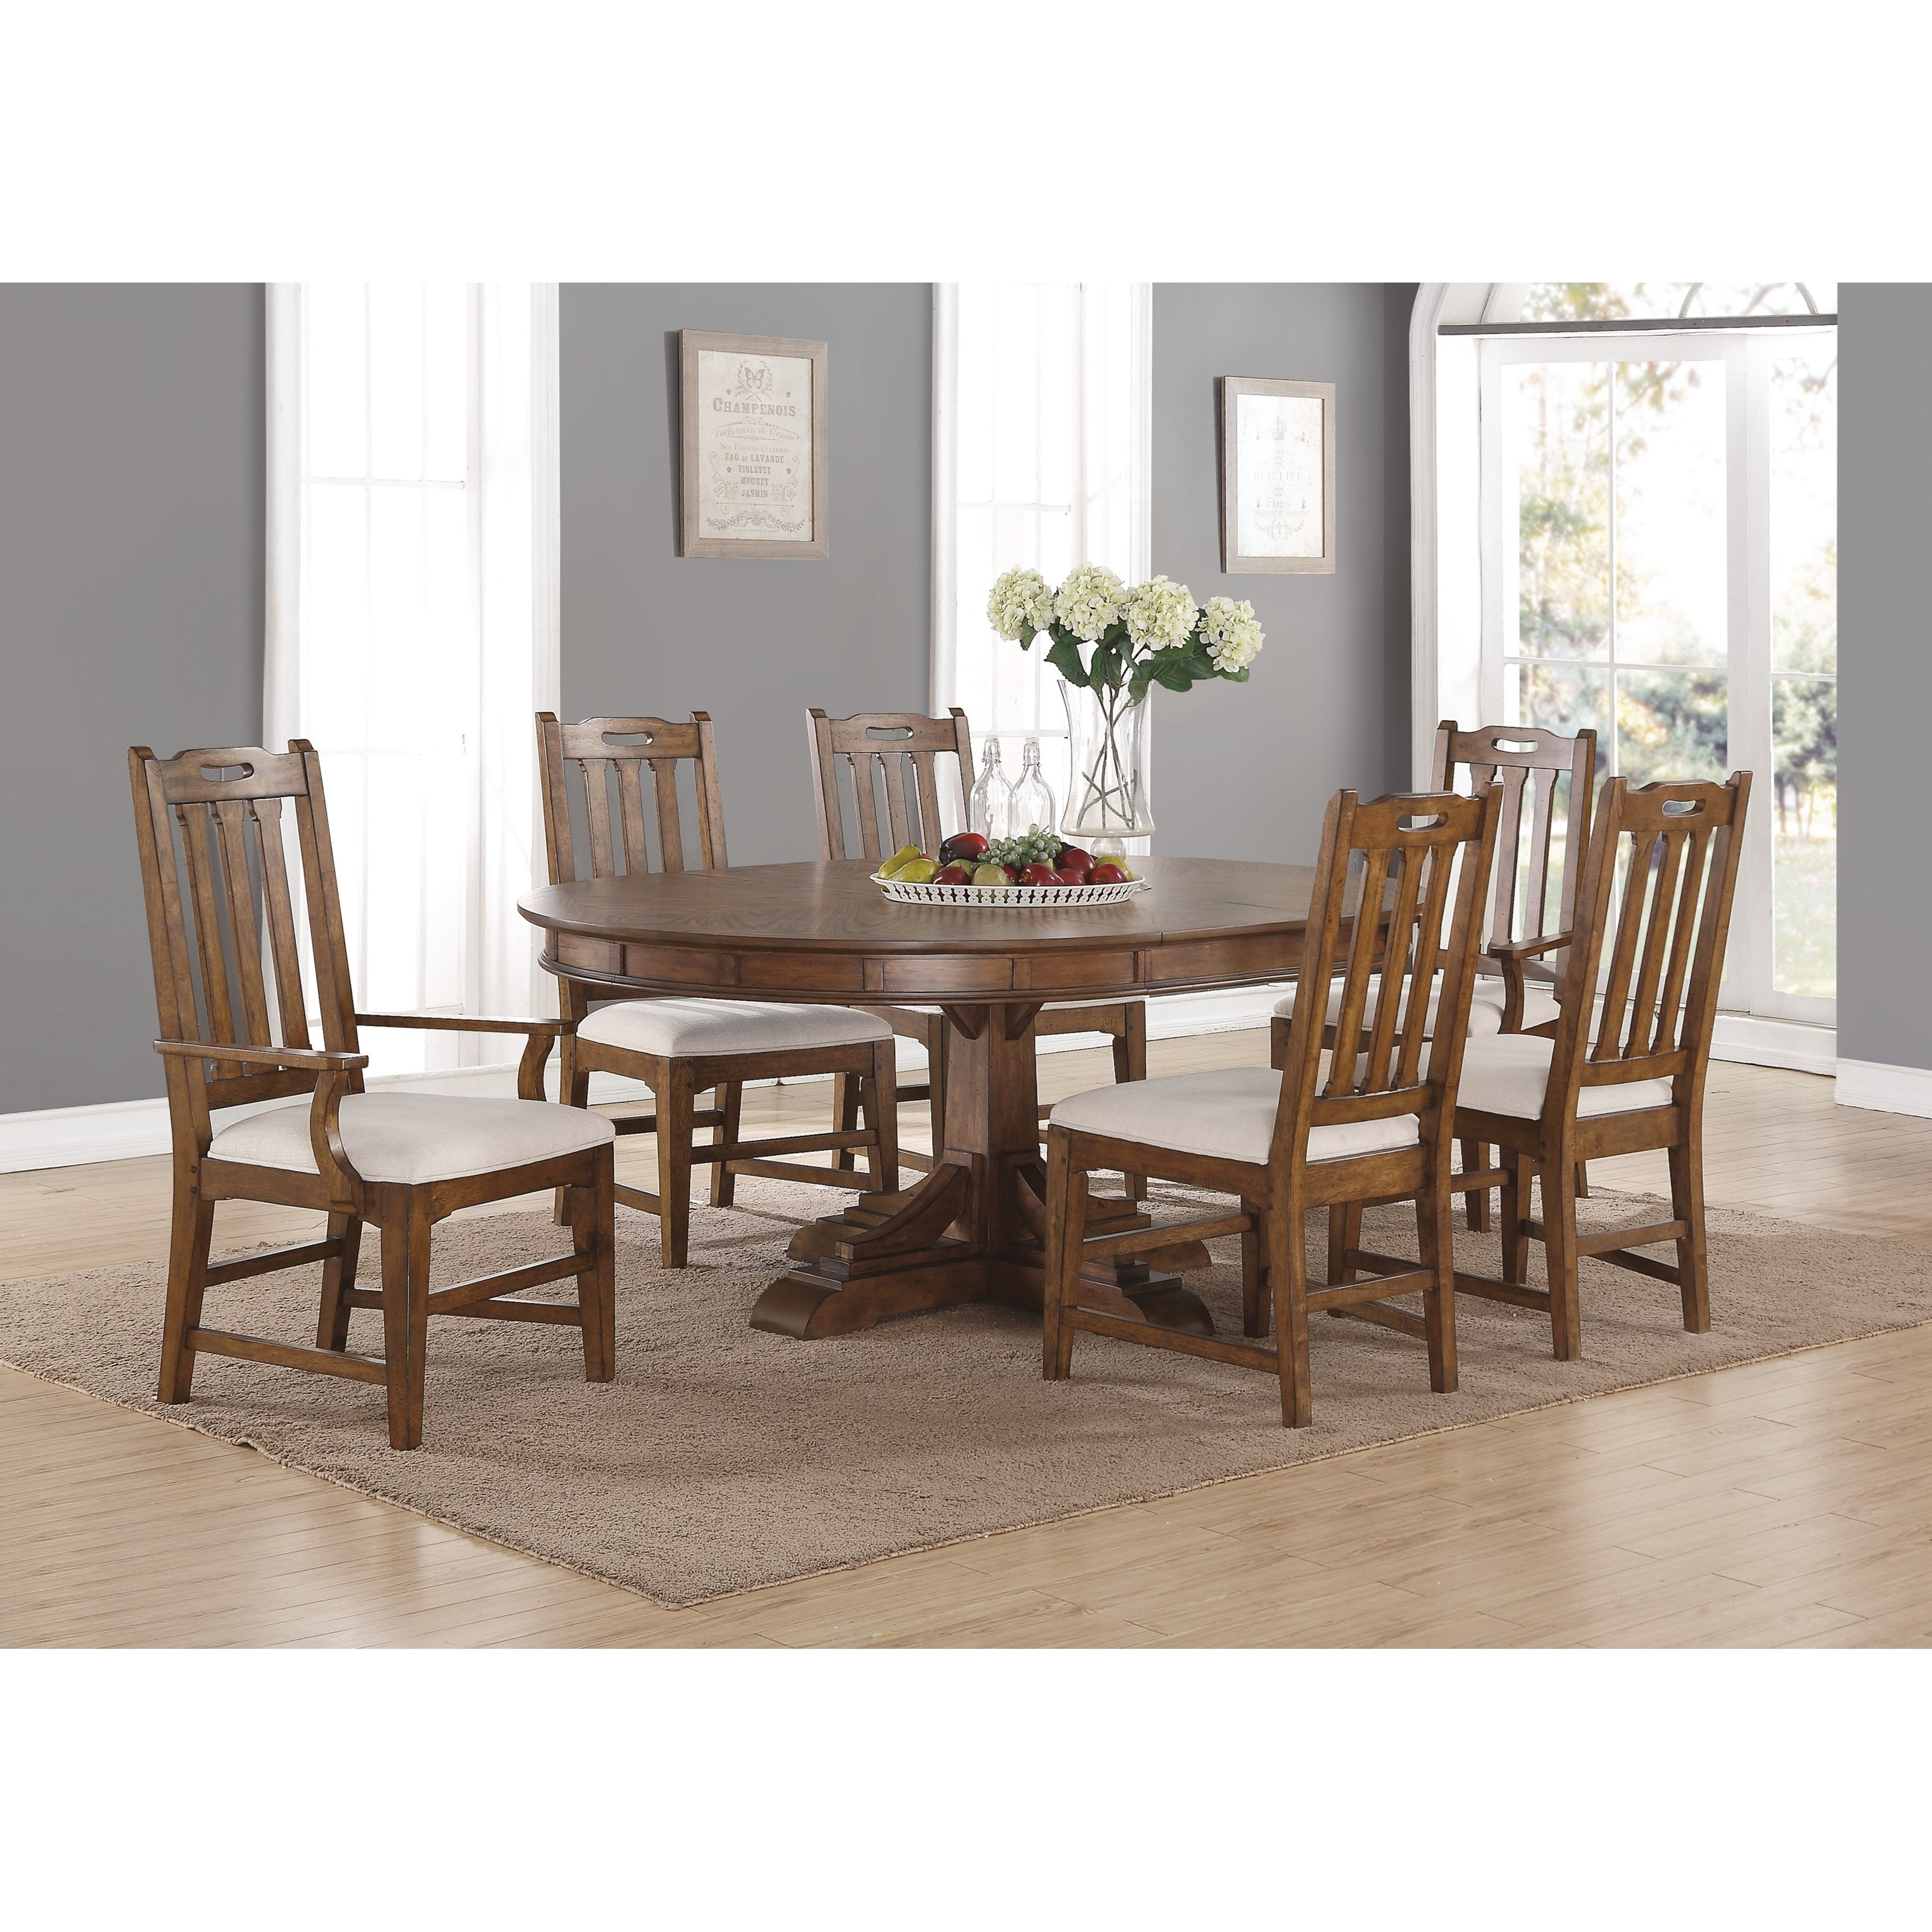 Amazing Flexsteel Wynwood Collection Sonora Formal Oval Dining Table And Chair Set  With Upholstered Chairs